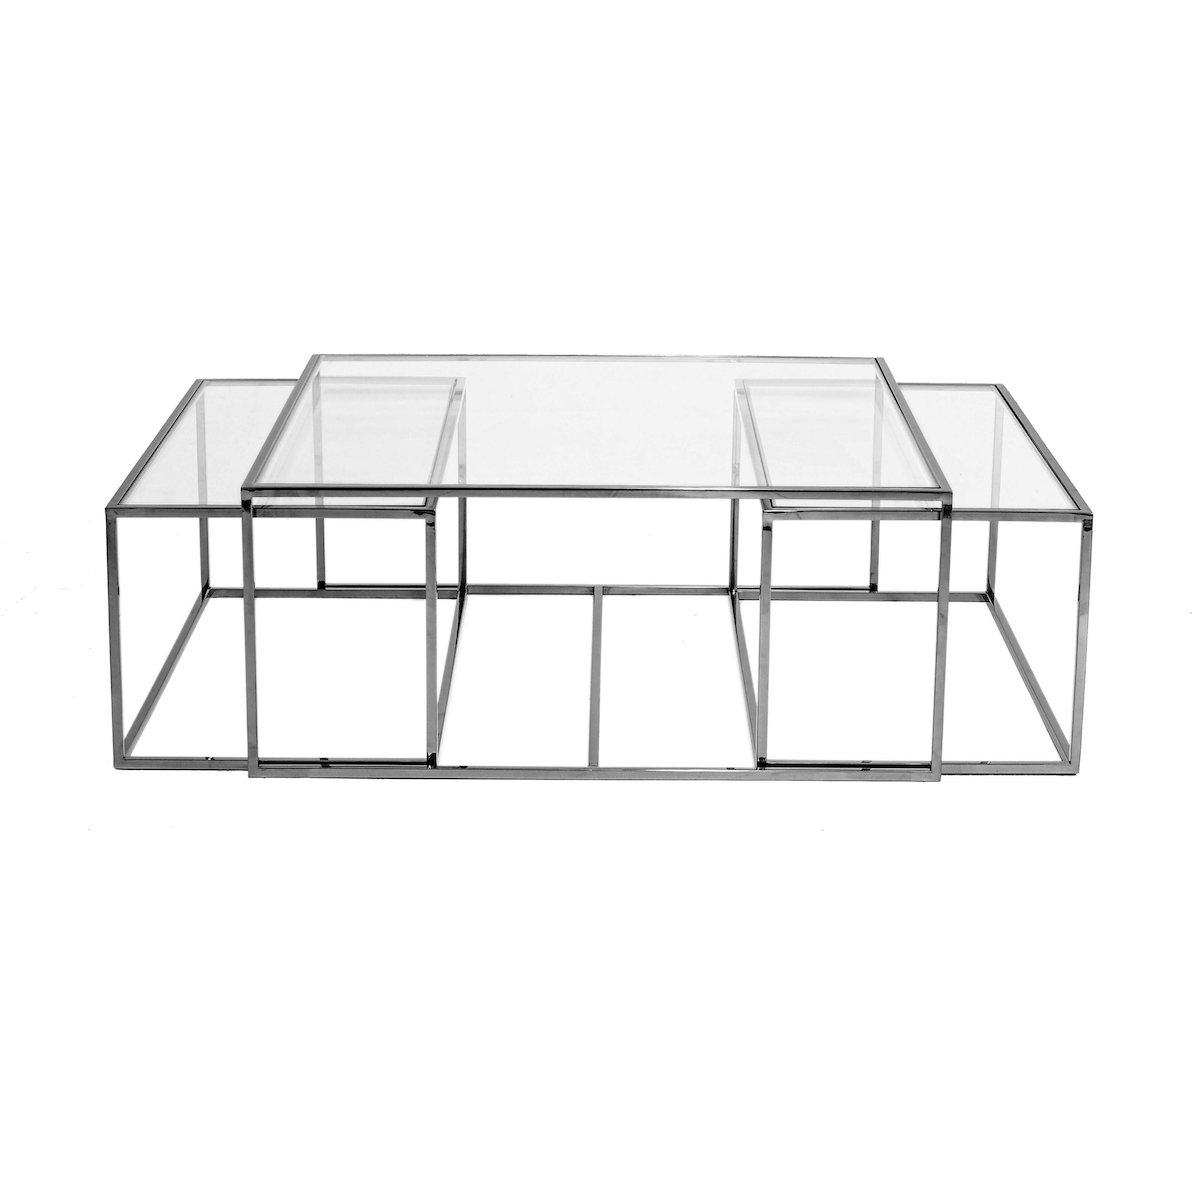 Three Set Table Large – Black Chrome